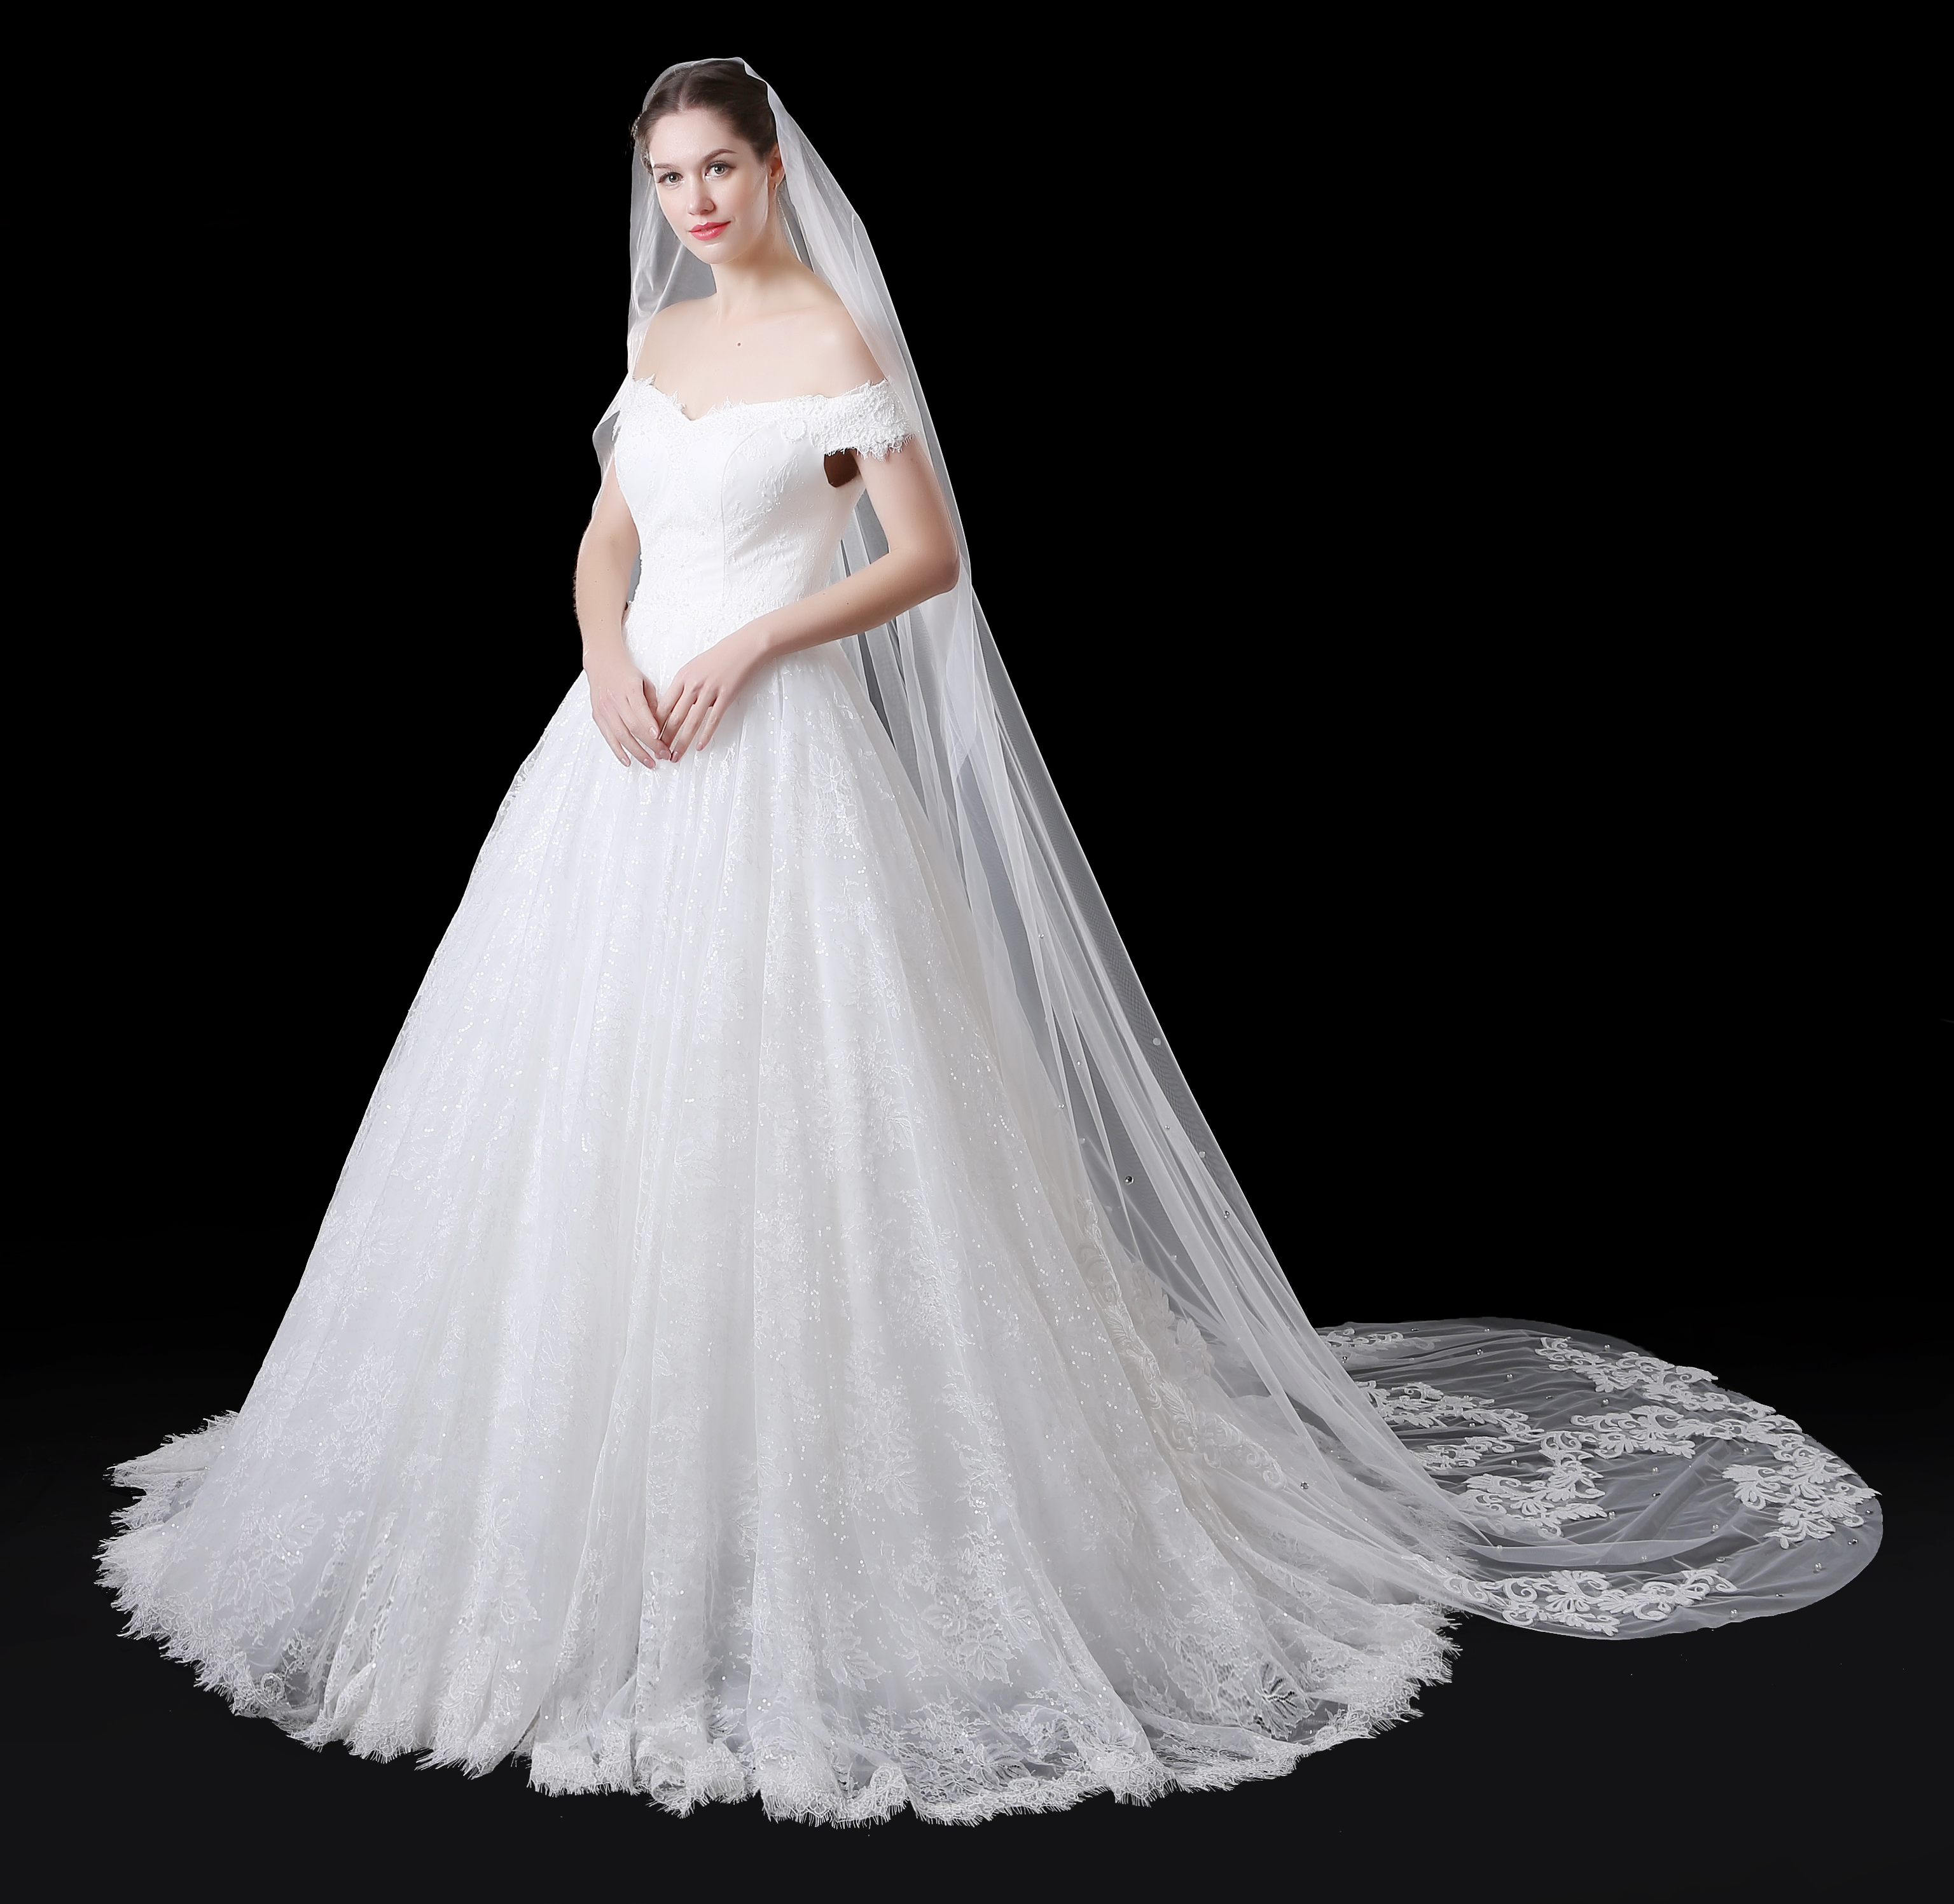 Customized 5 Meter White Ivory  Wedding Veils Long Lace Edge Bridal Veil with Comb Wedding Accessories Bride  Wedding Veil 2020